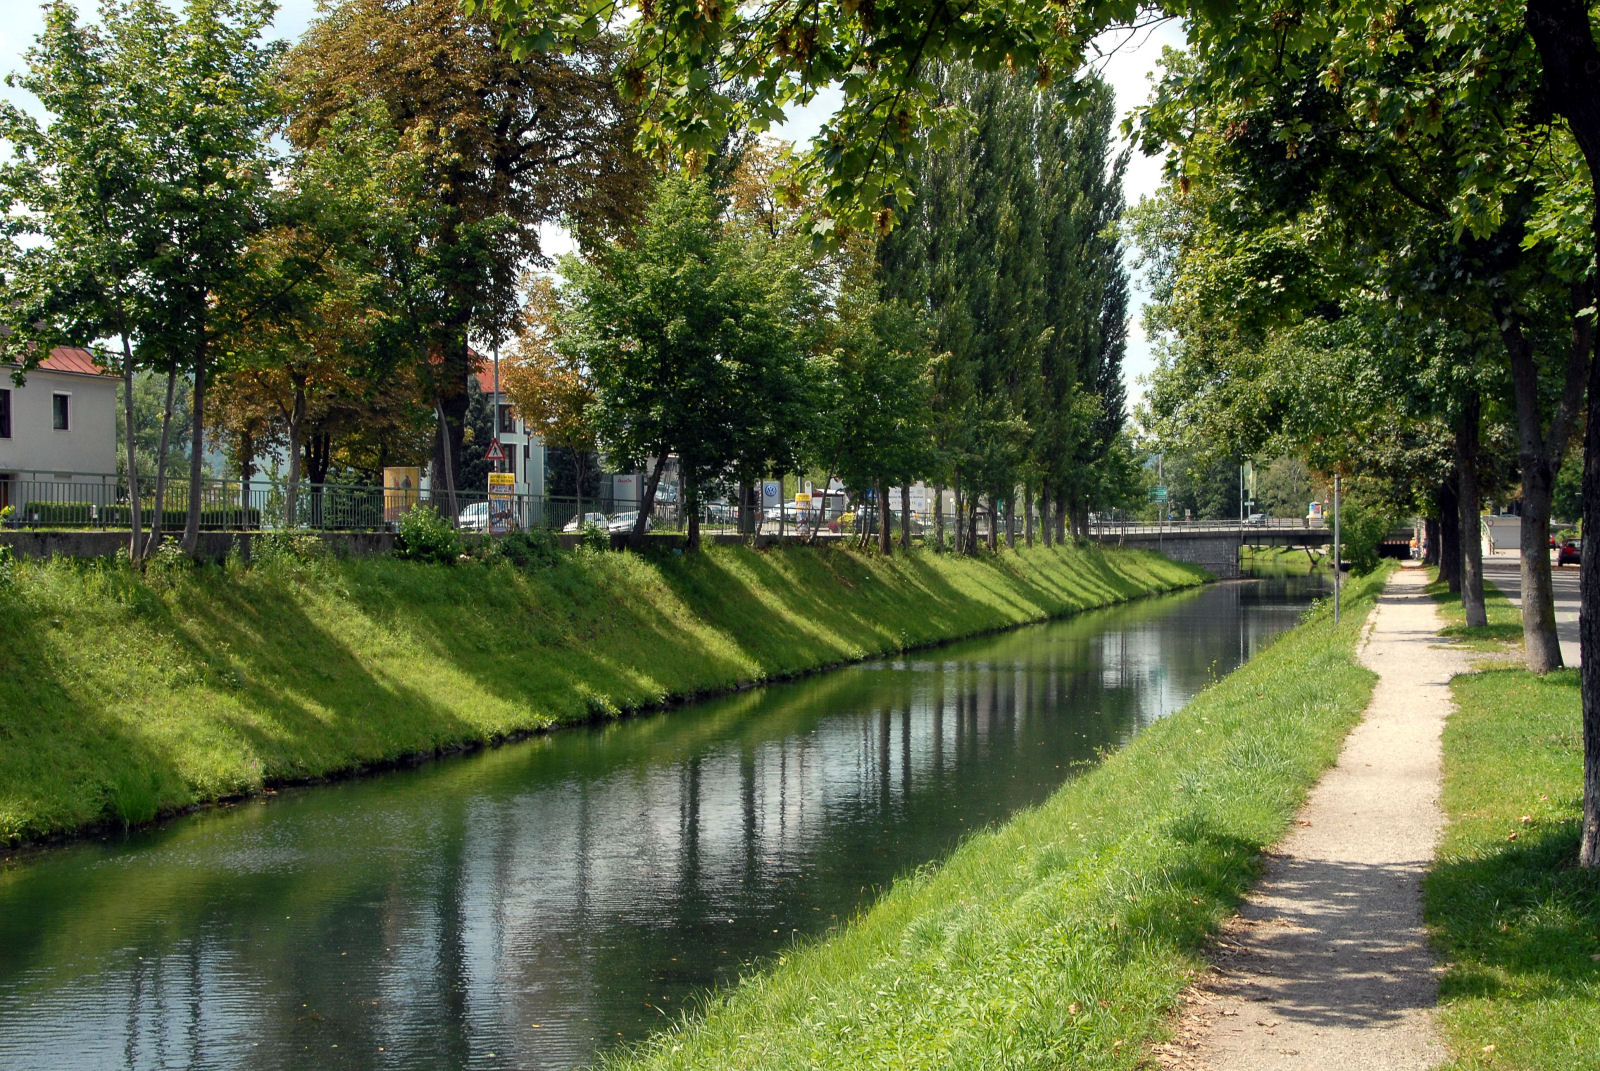 Lendkanal, the artificial outflow from the Lake Woerth in Klagenfurt, Carinthia, Austria